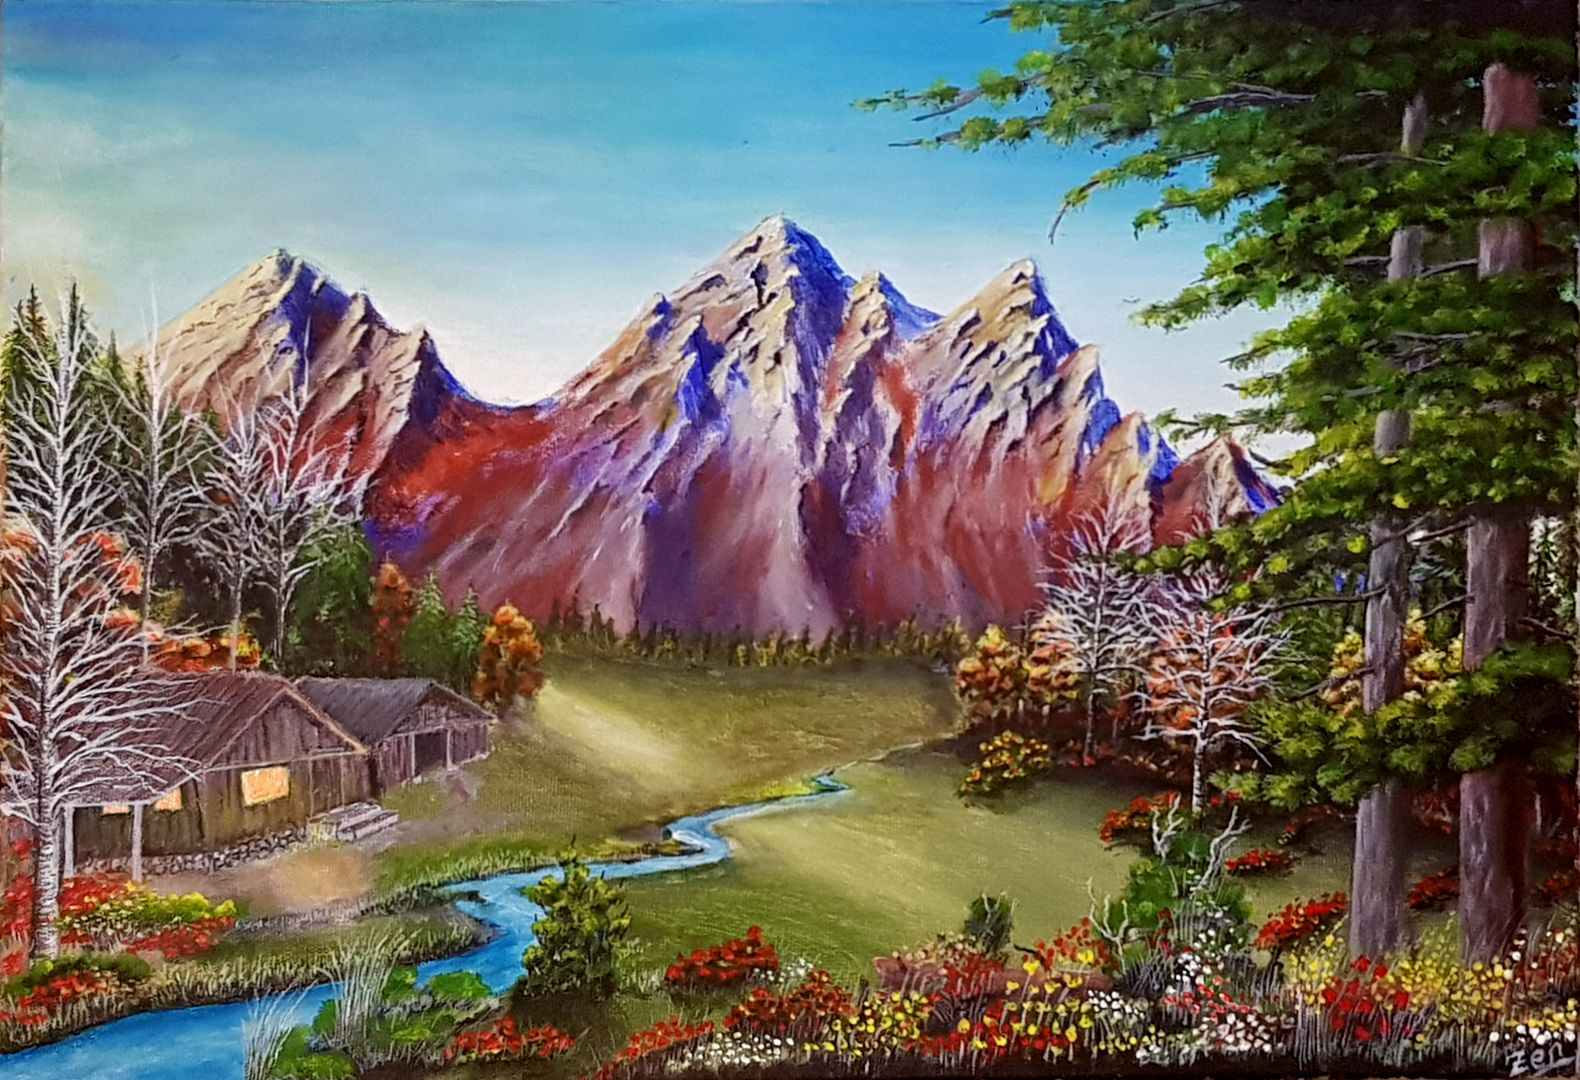 Rusty Mountains Landscape Acrylic Painting On Canvas Pasli Daglar